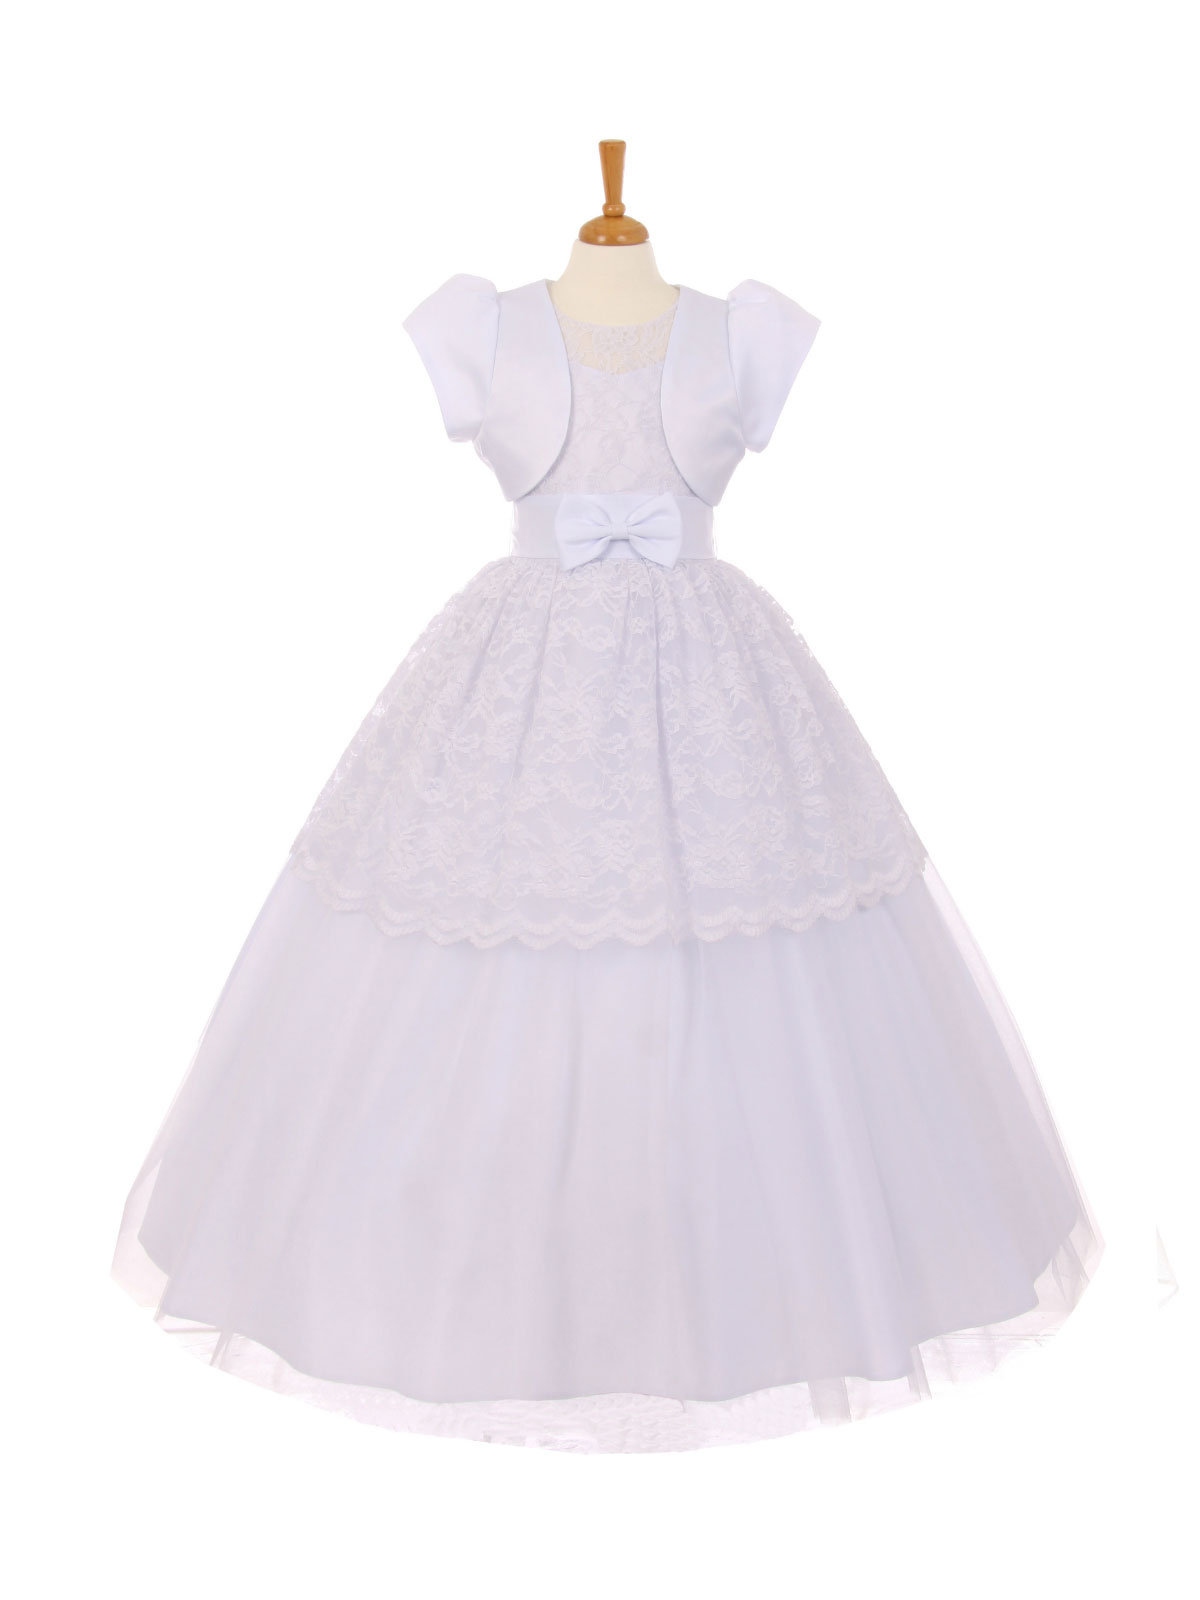 RK 2023 Girls Dress Style 2023 WHITE Lace Dress with